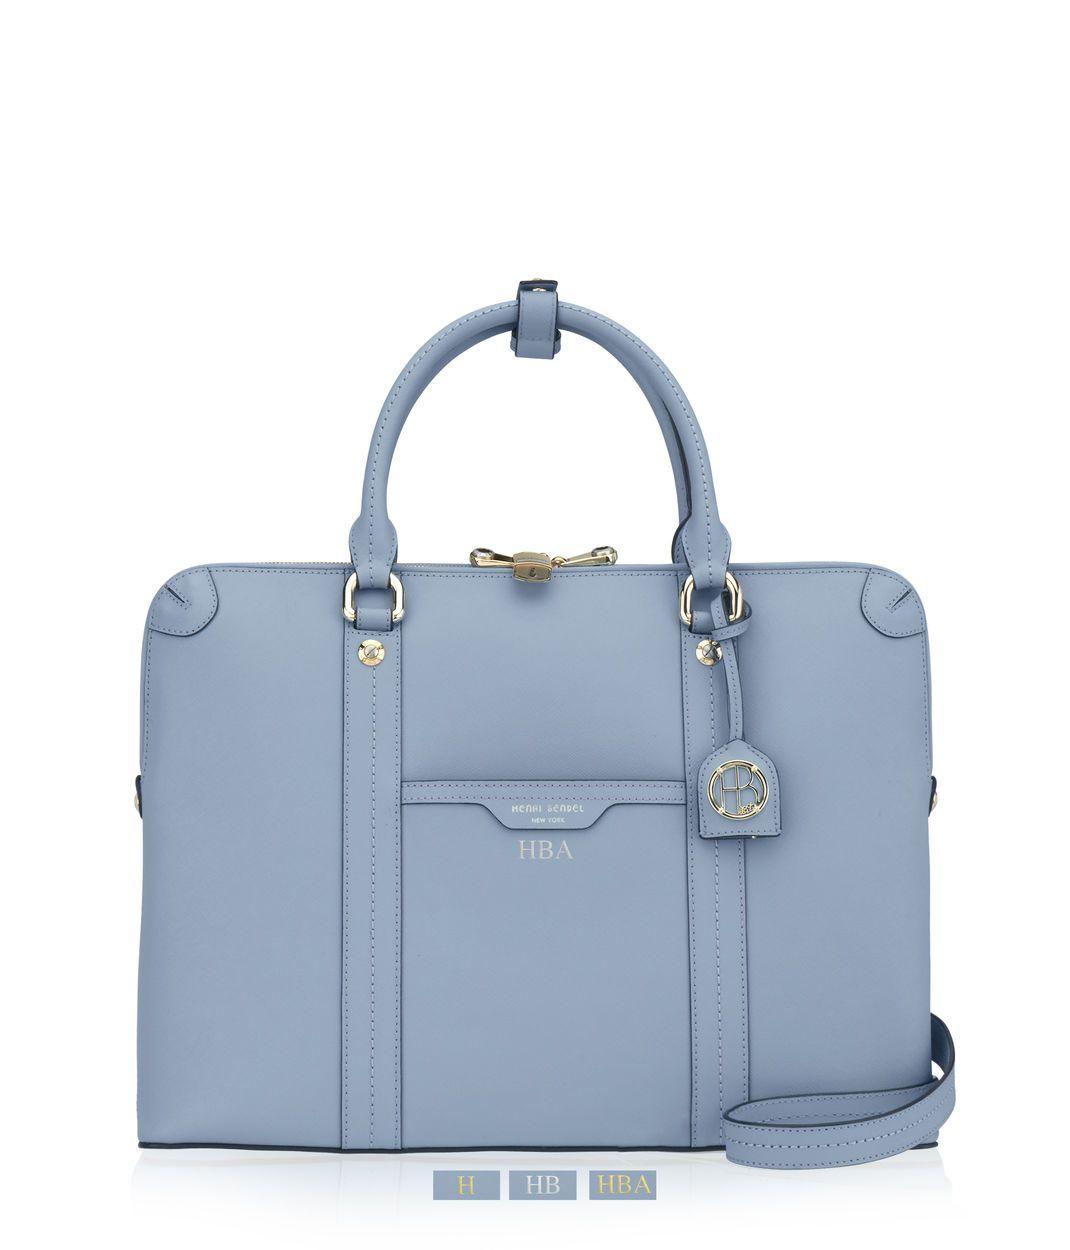 1dbbceea6266 The West 57th Briefcase belongs in every business-minded Bendel Girl s  luxury handbag collection. Designed with the modern professional woman in  mind with ...